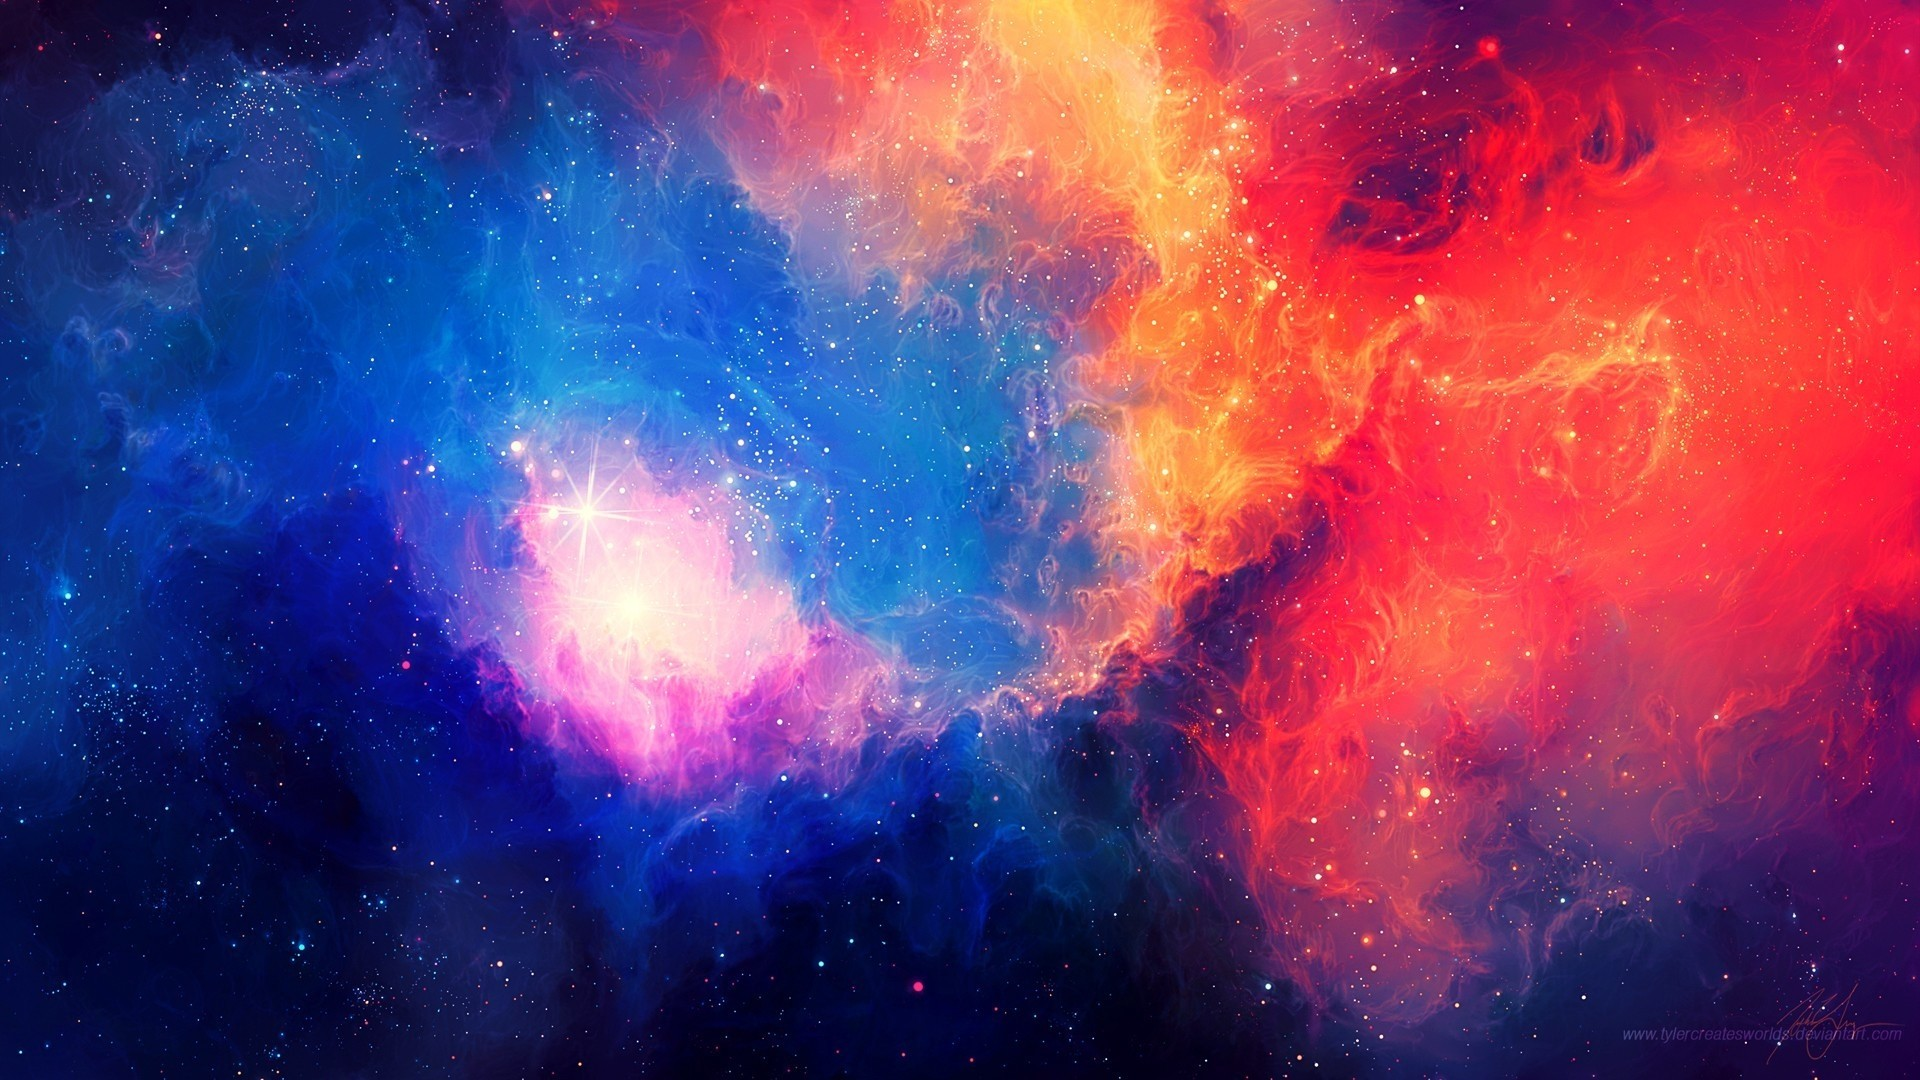 Abstract Space HD Wallpaper